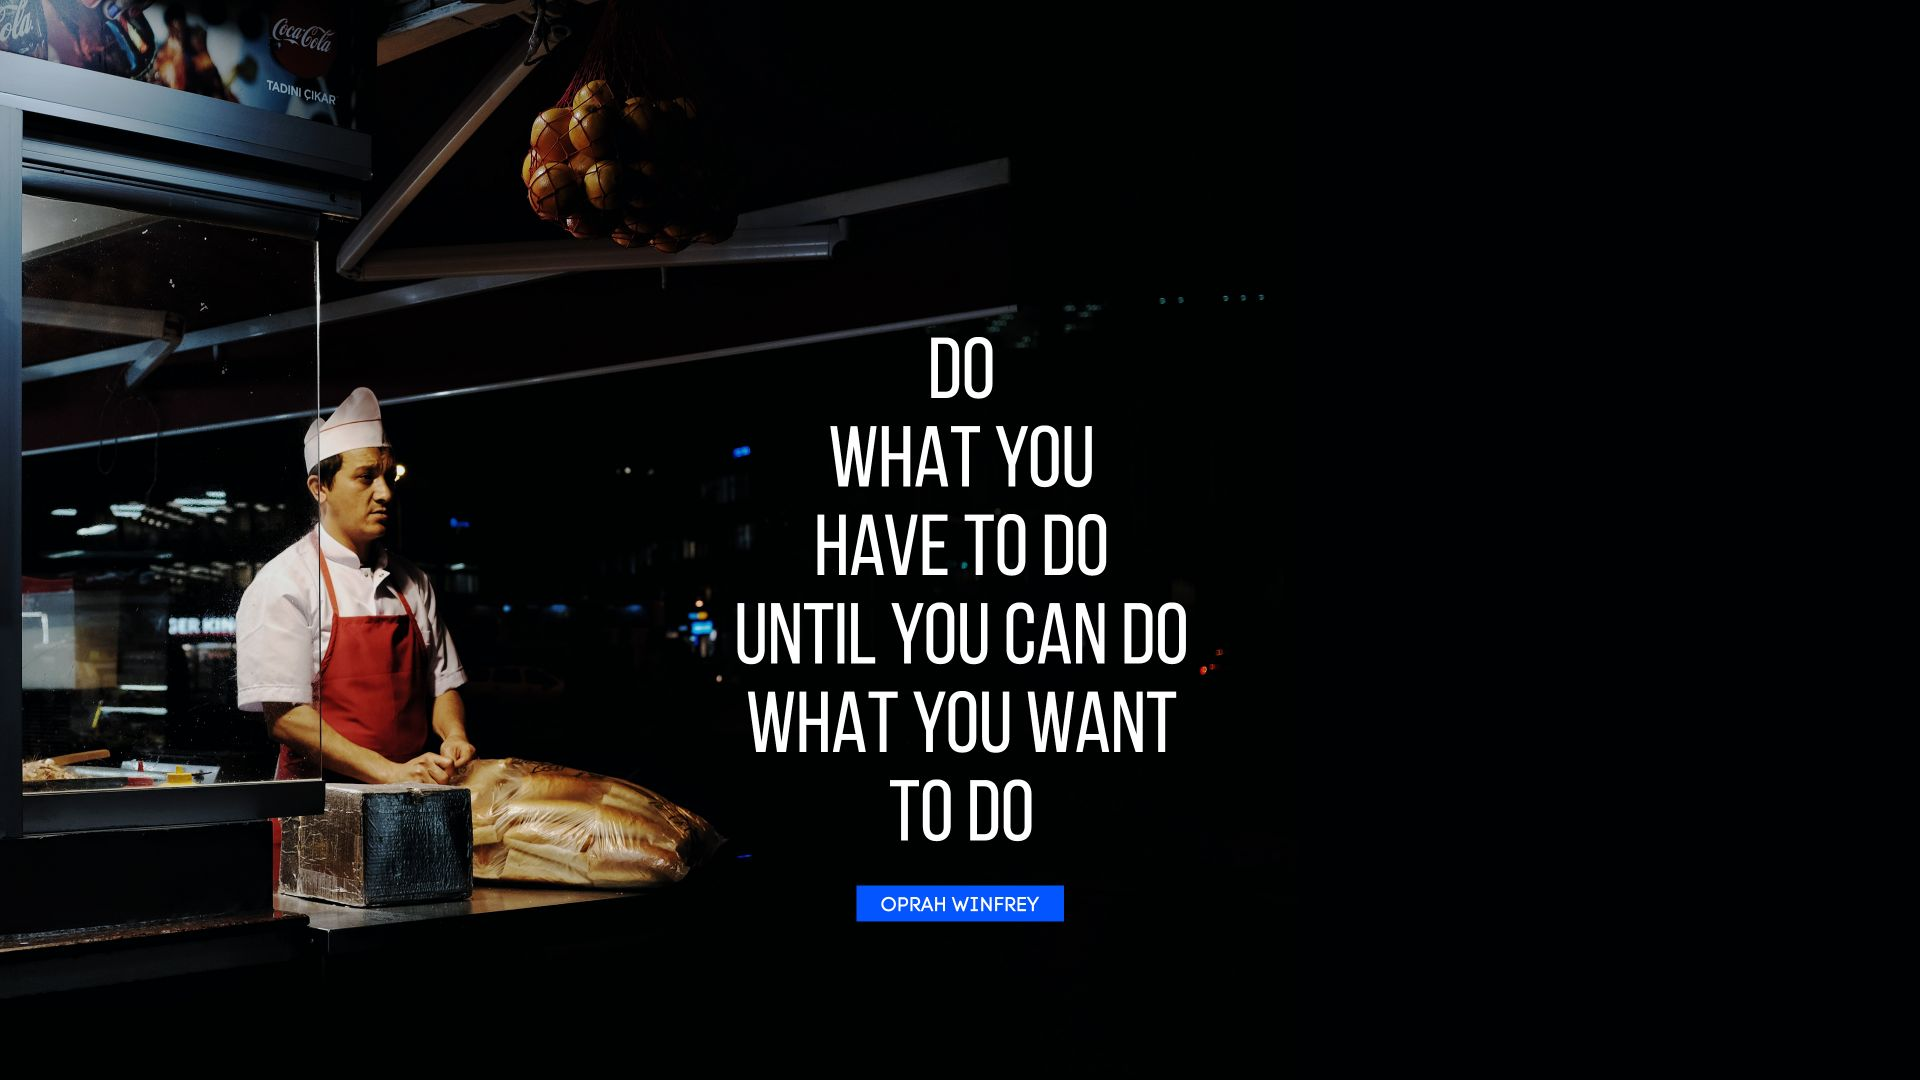 Do what you have to do until you can do what you want to do. - Quote by Oprah Winfrey